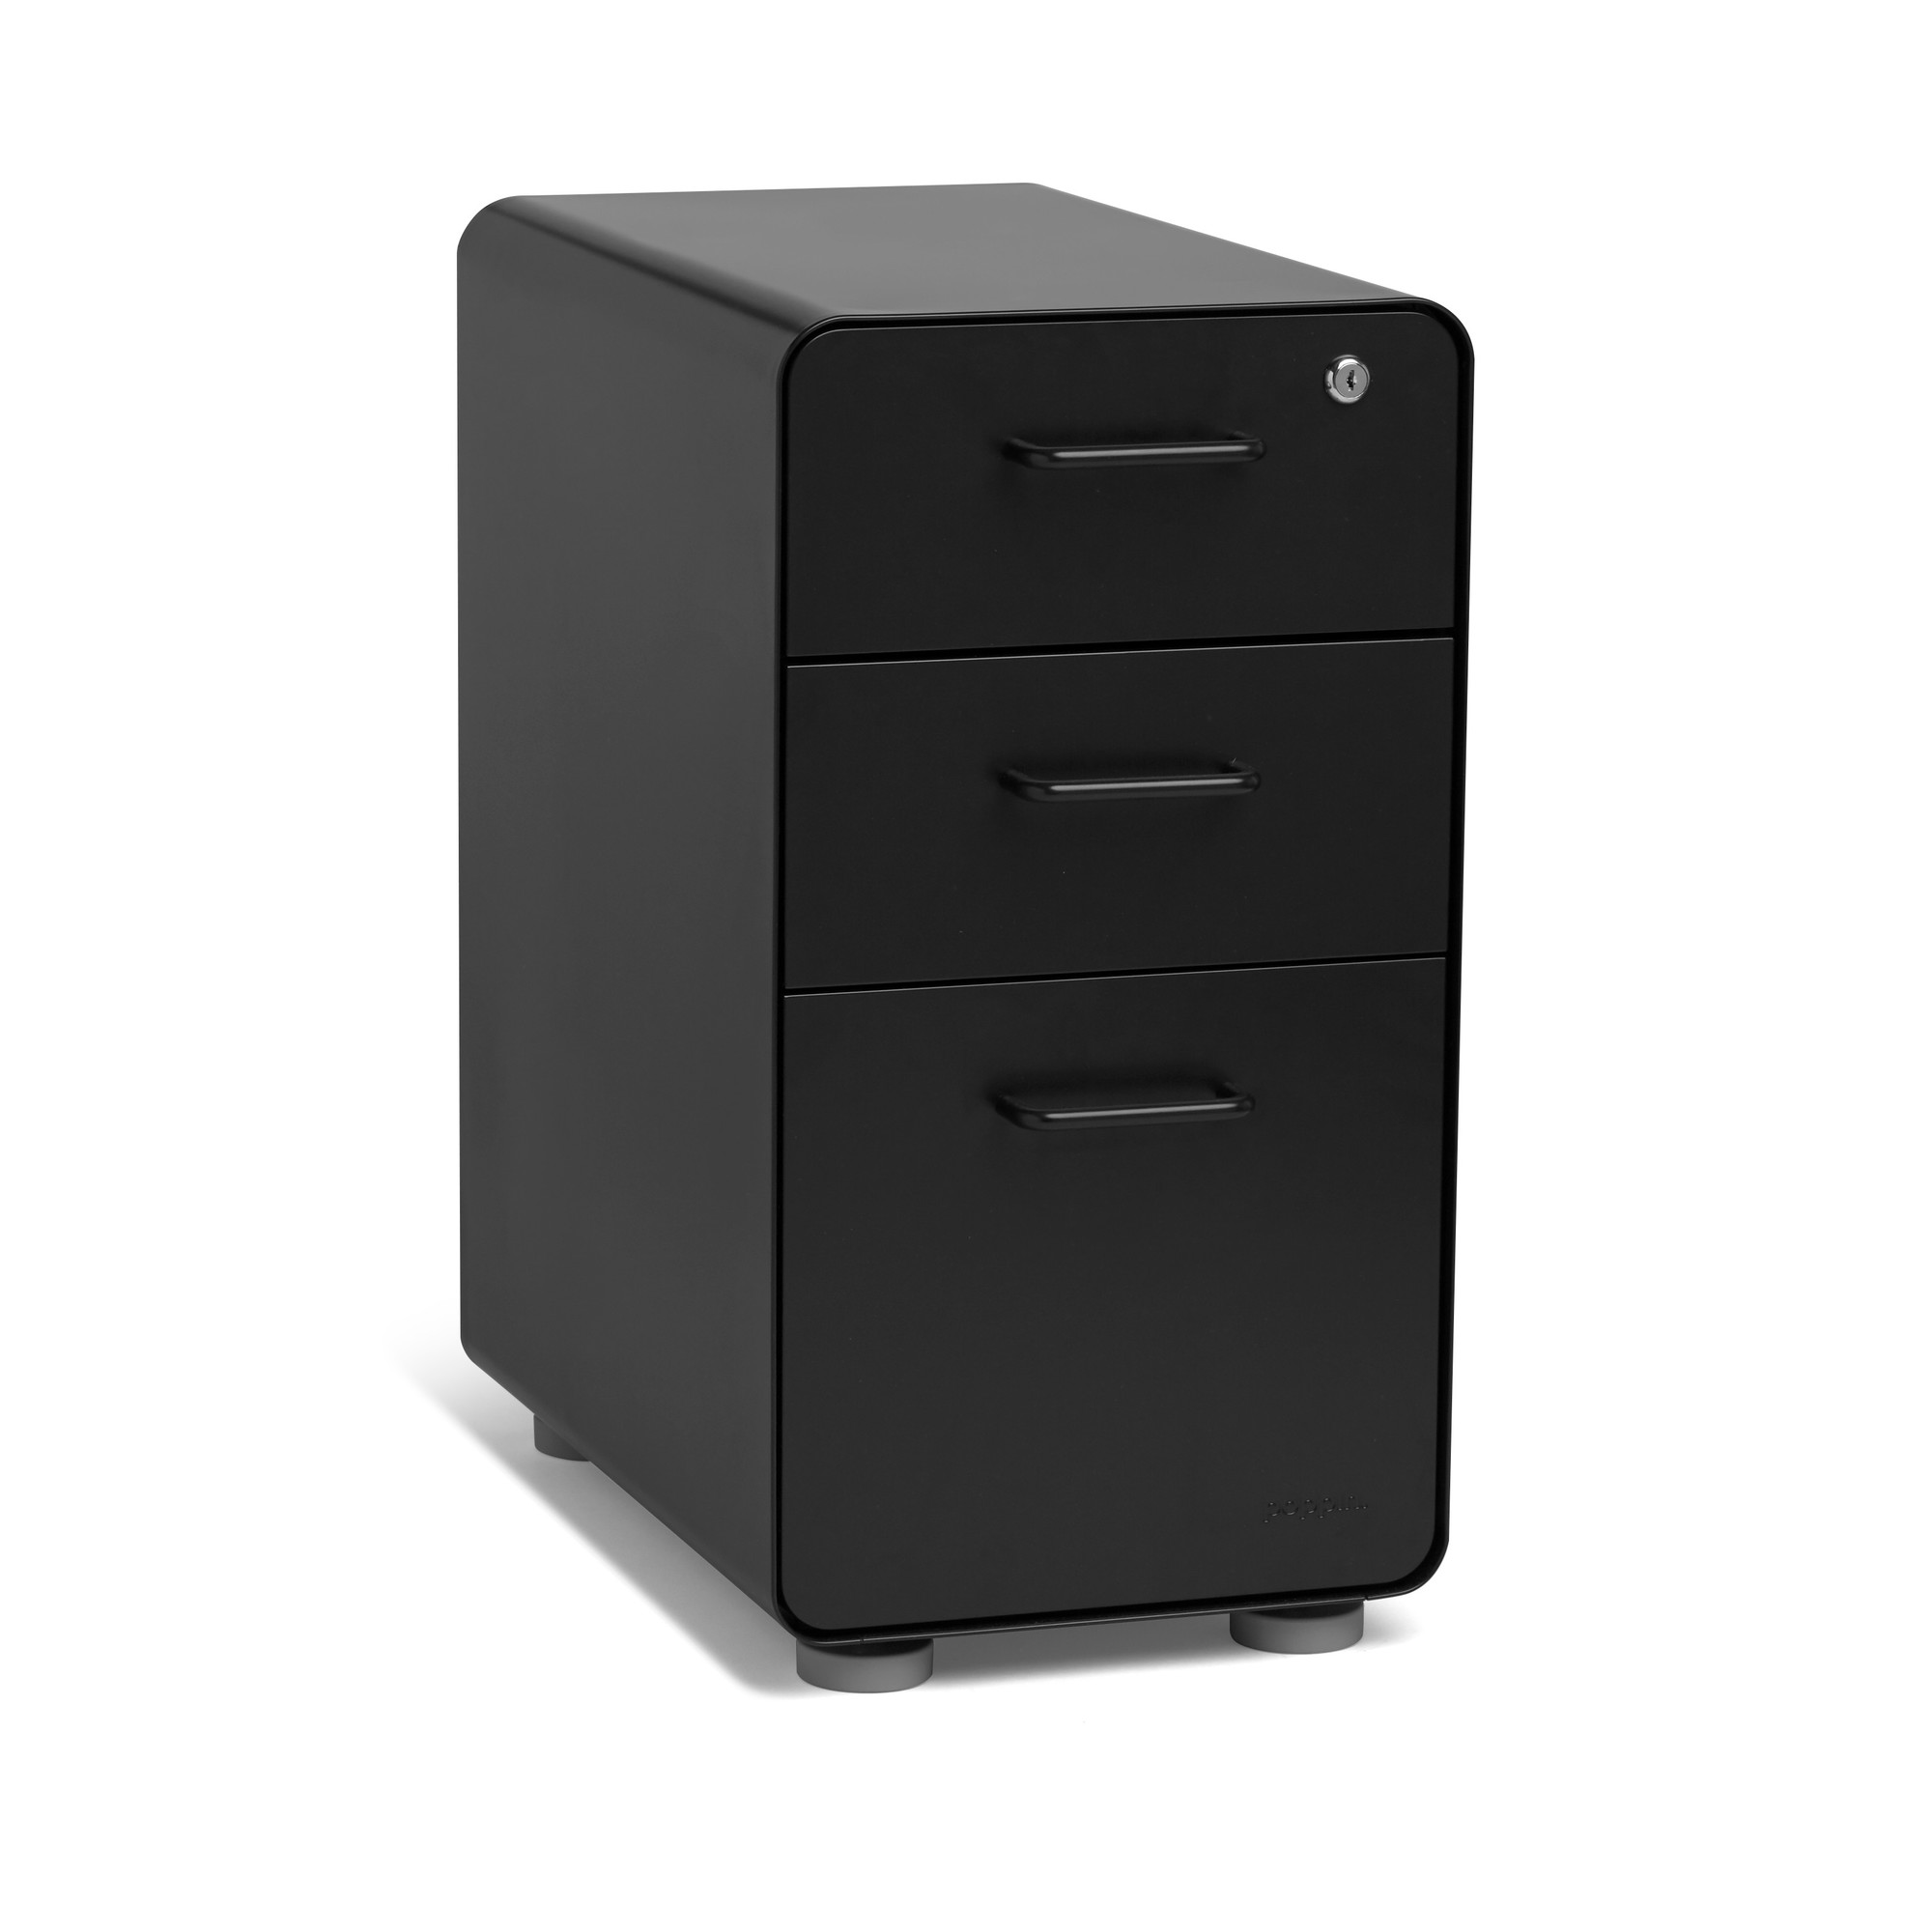 Black Slim Stow 3 Drawer File Cabinet,Black,hi Res. Loading Zoom